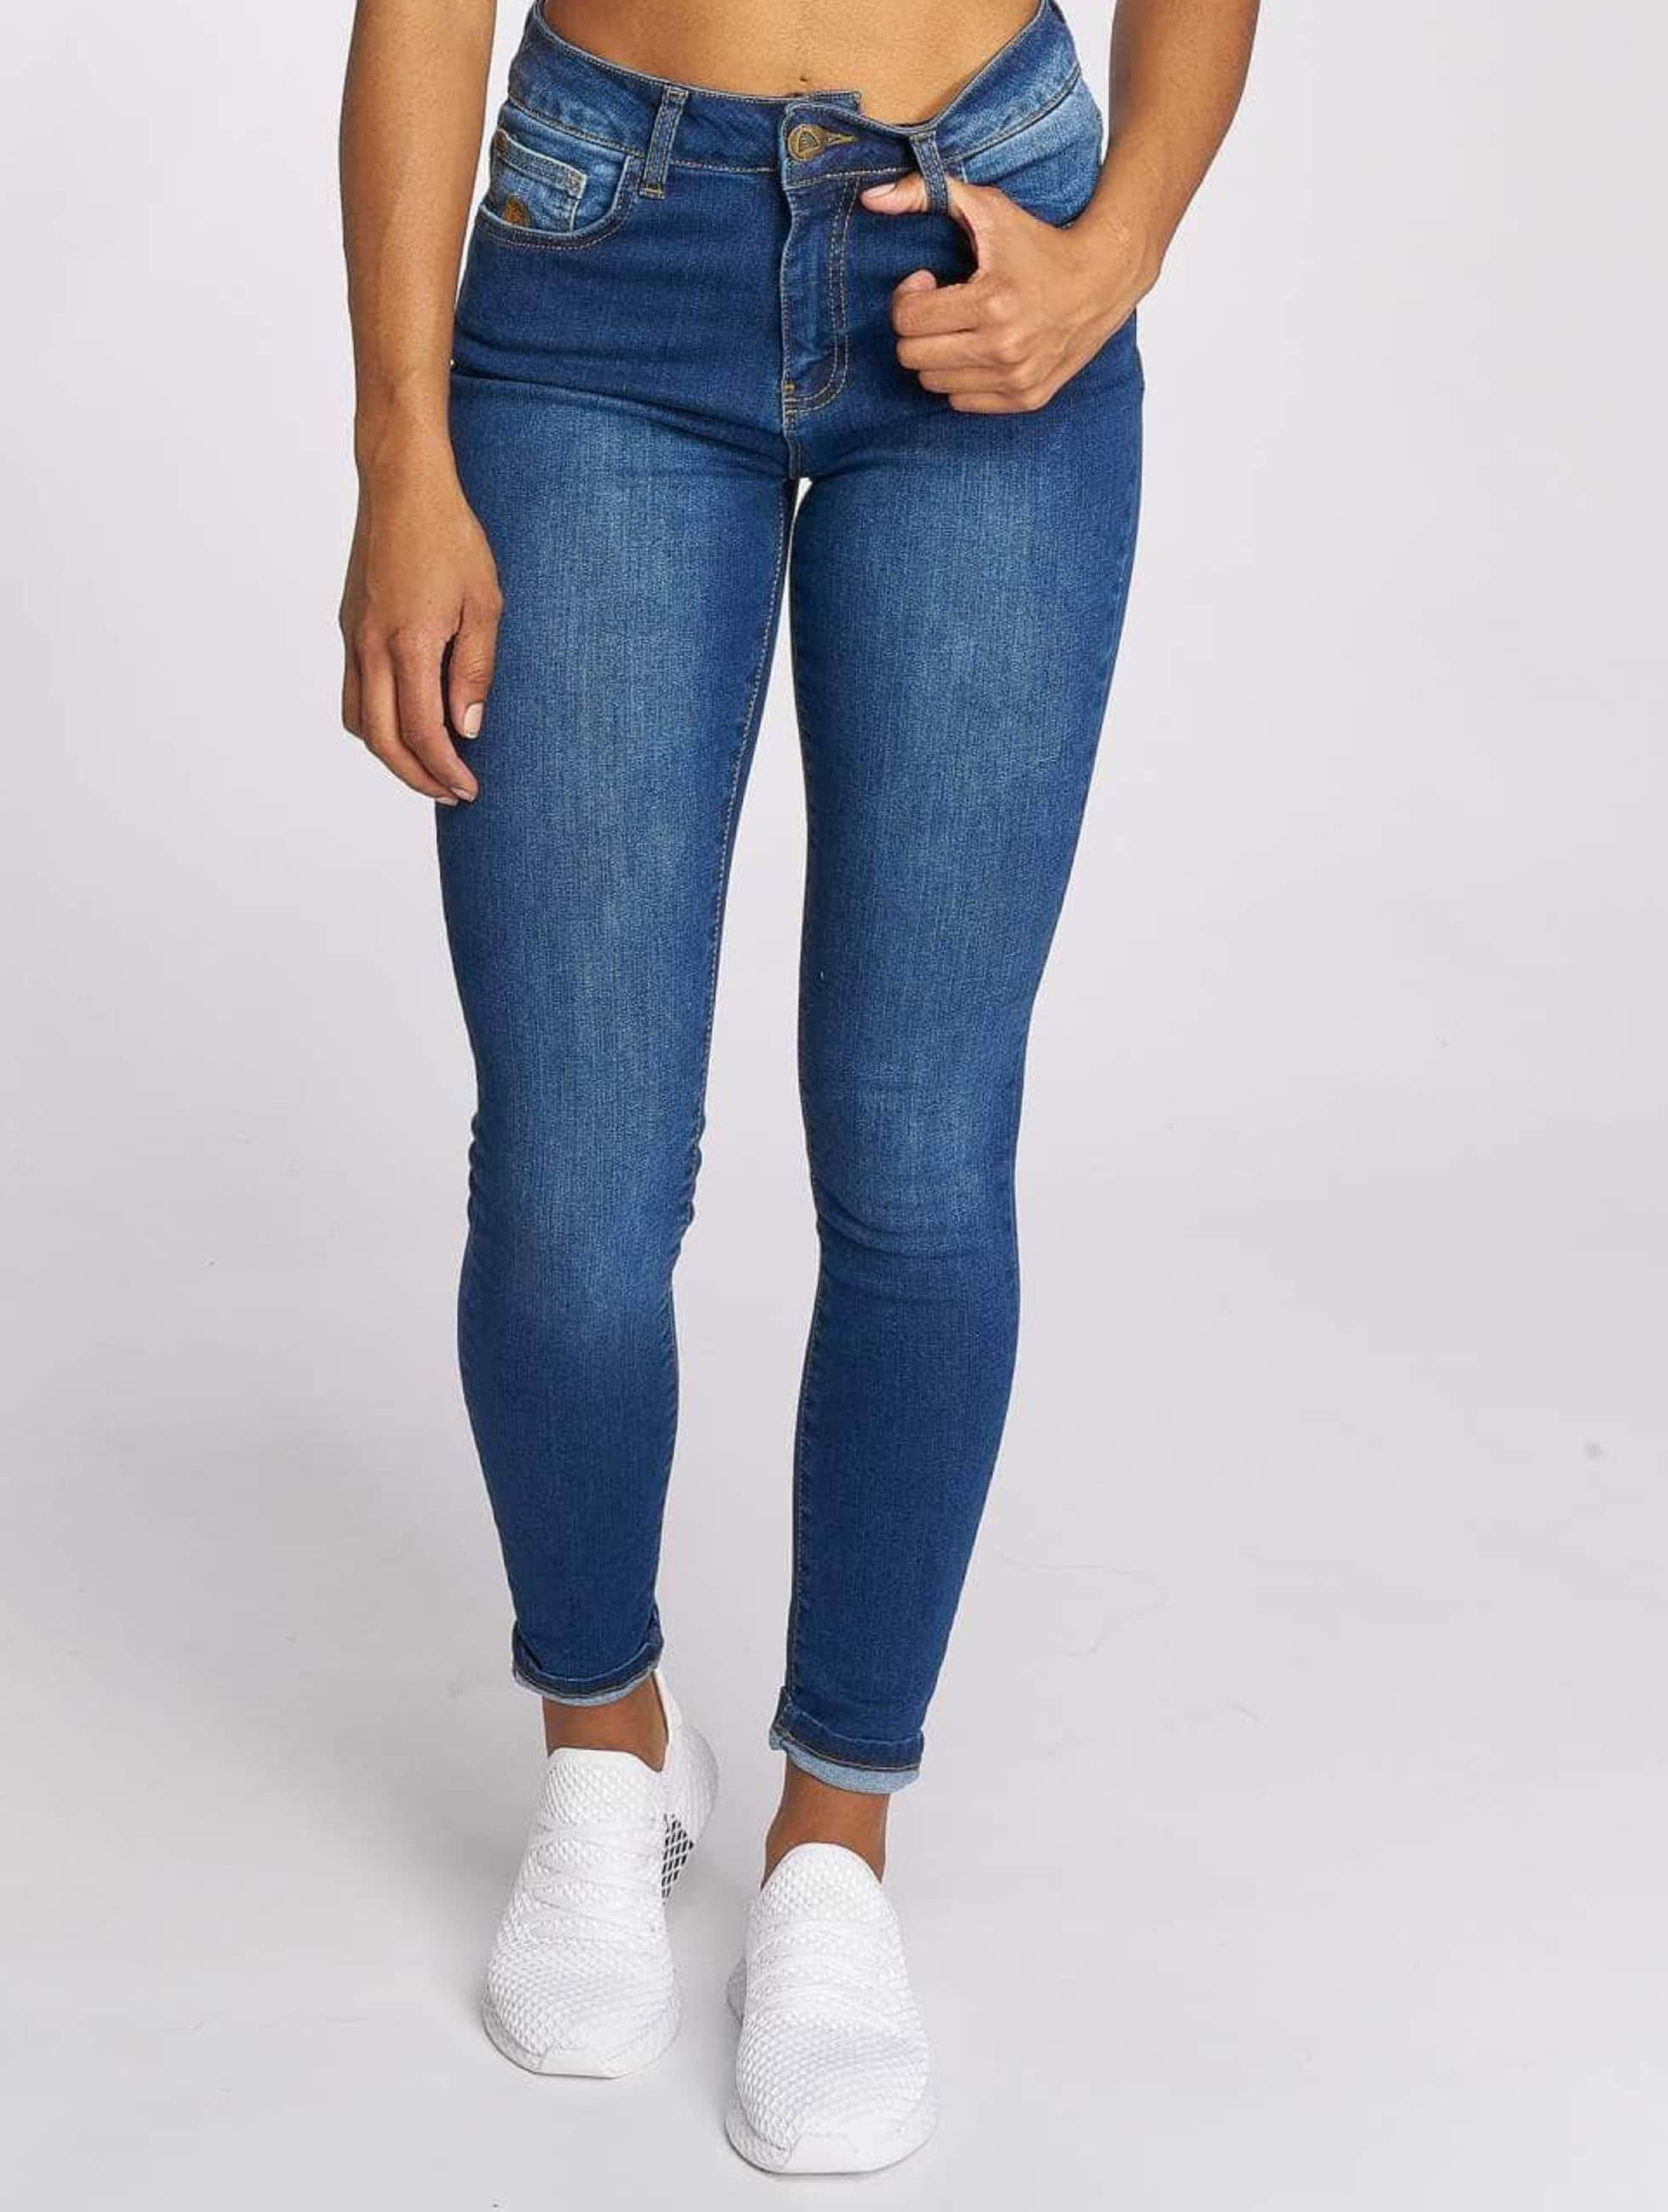 Just Rhyse / High Waisted Jeans Buttercup in blue W 32